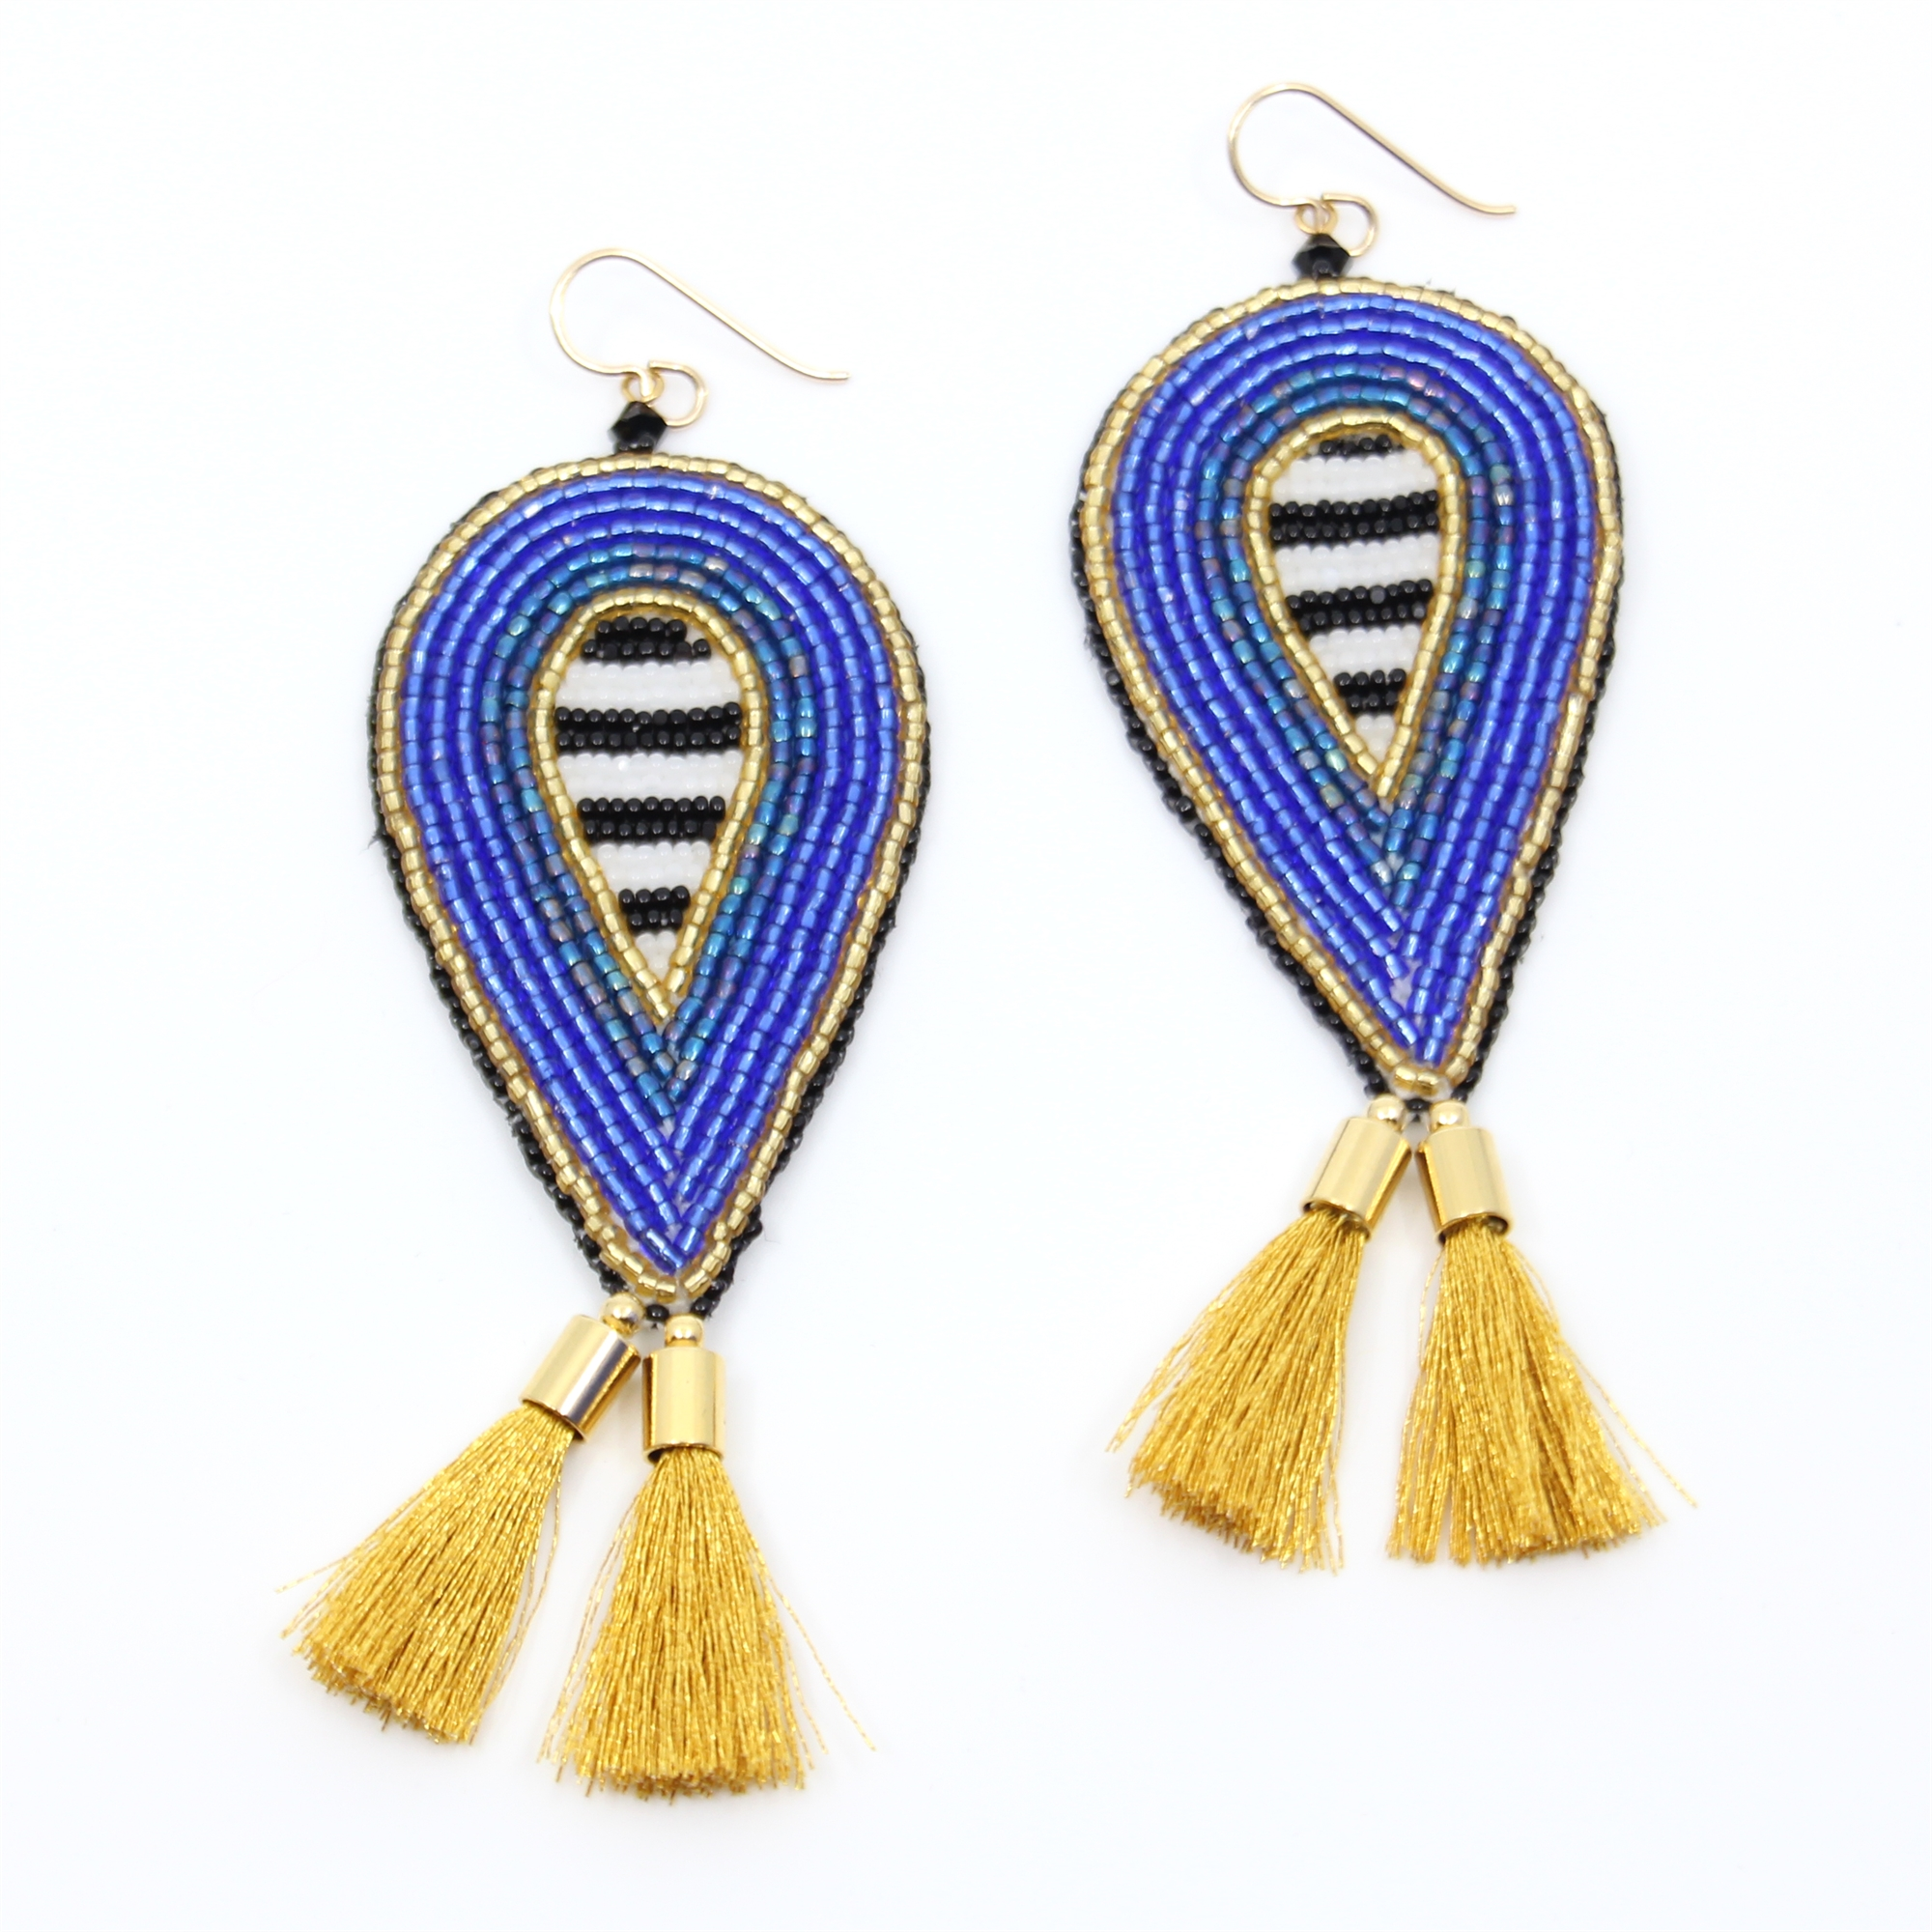 Beaded Gold Fringe Earrings by Hollis Chitto